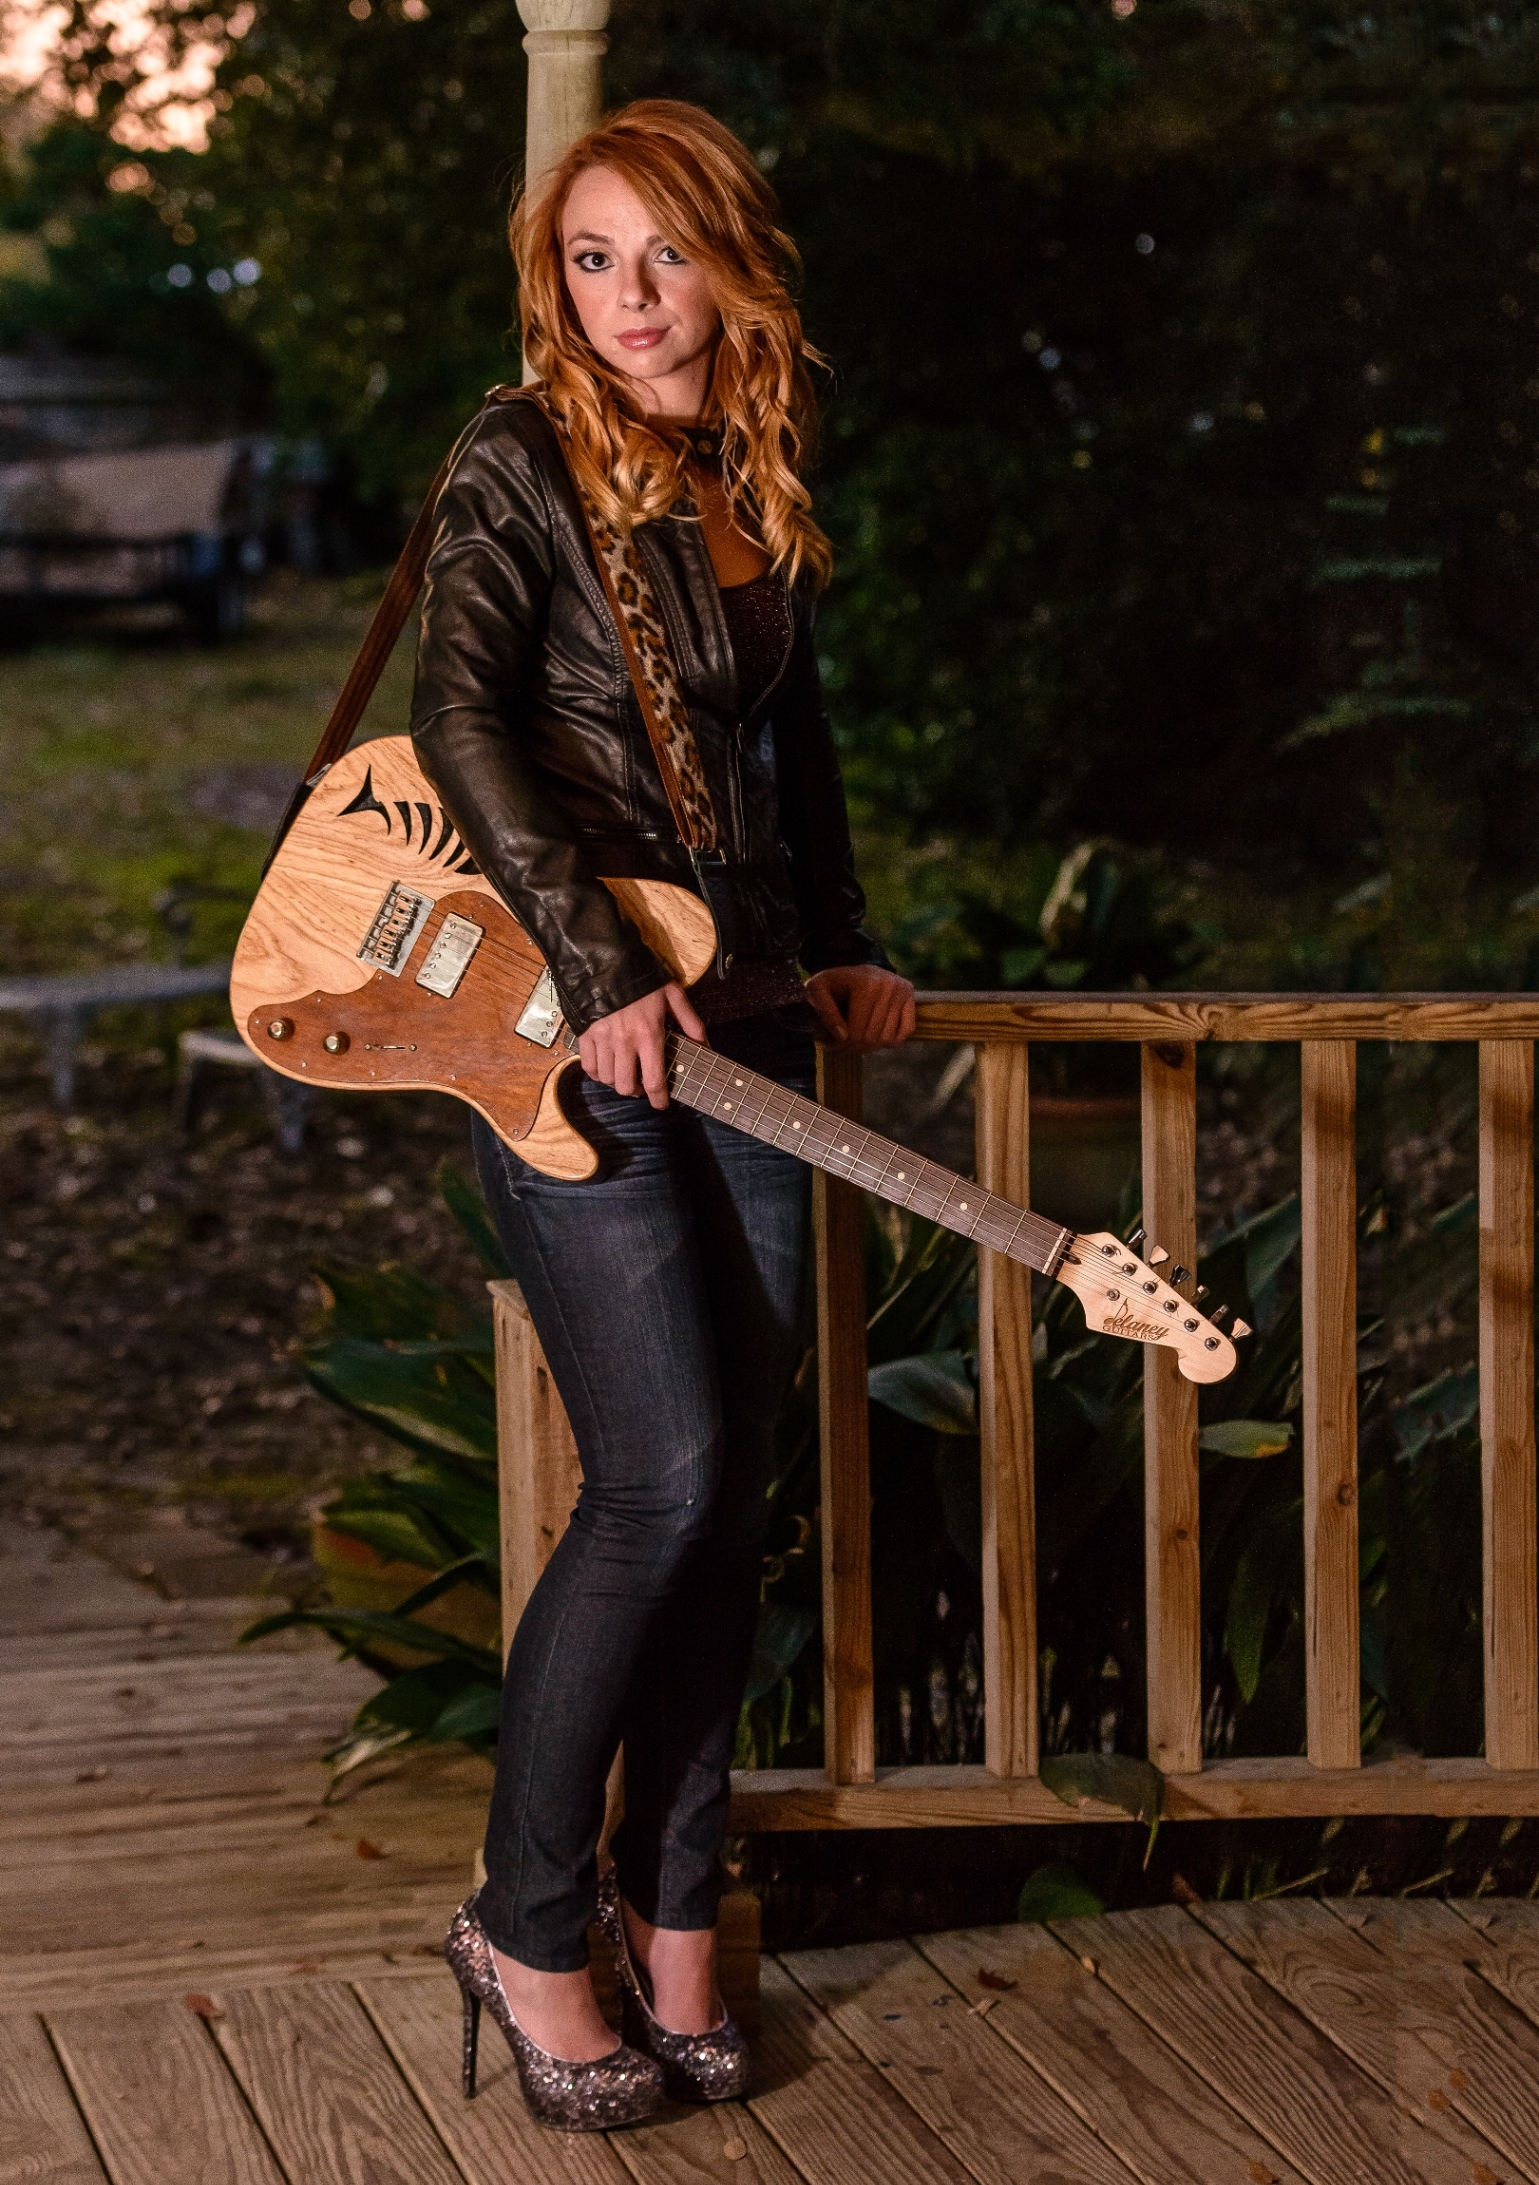 Samantha Fish With Special Guest Jordan Thomas The Mojo Roots The Mission